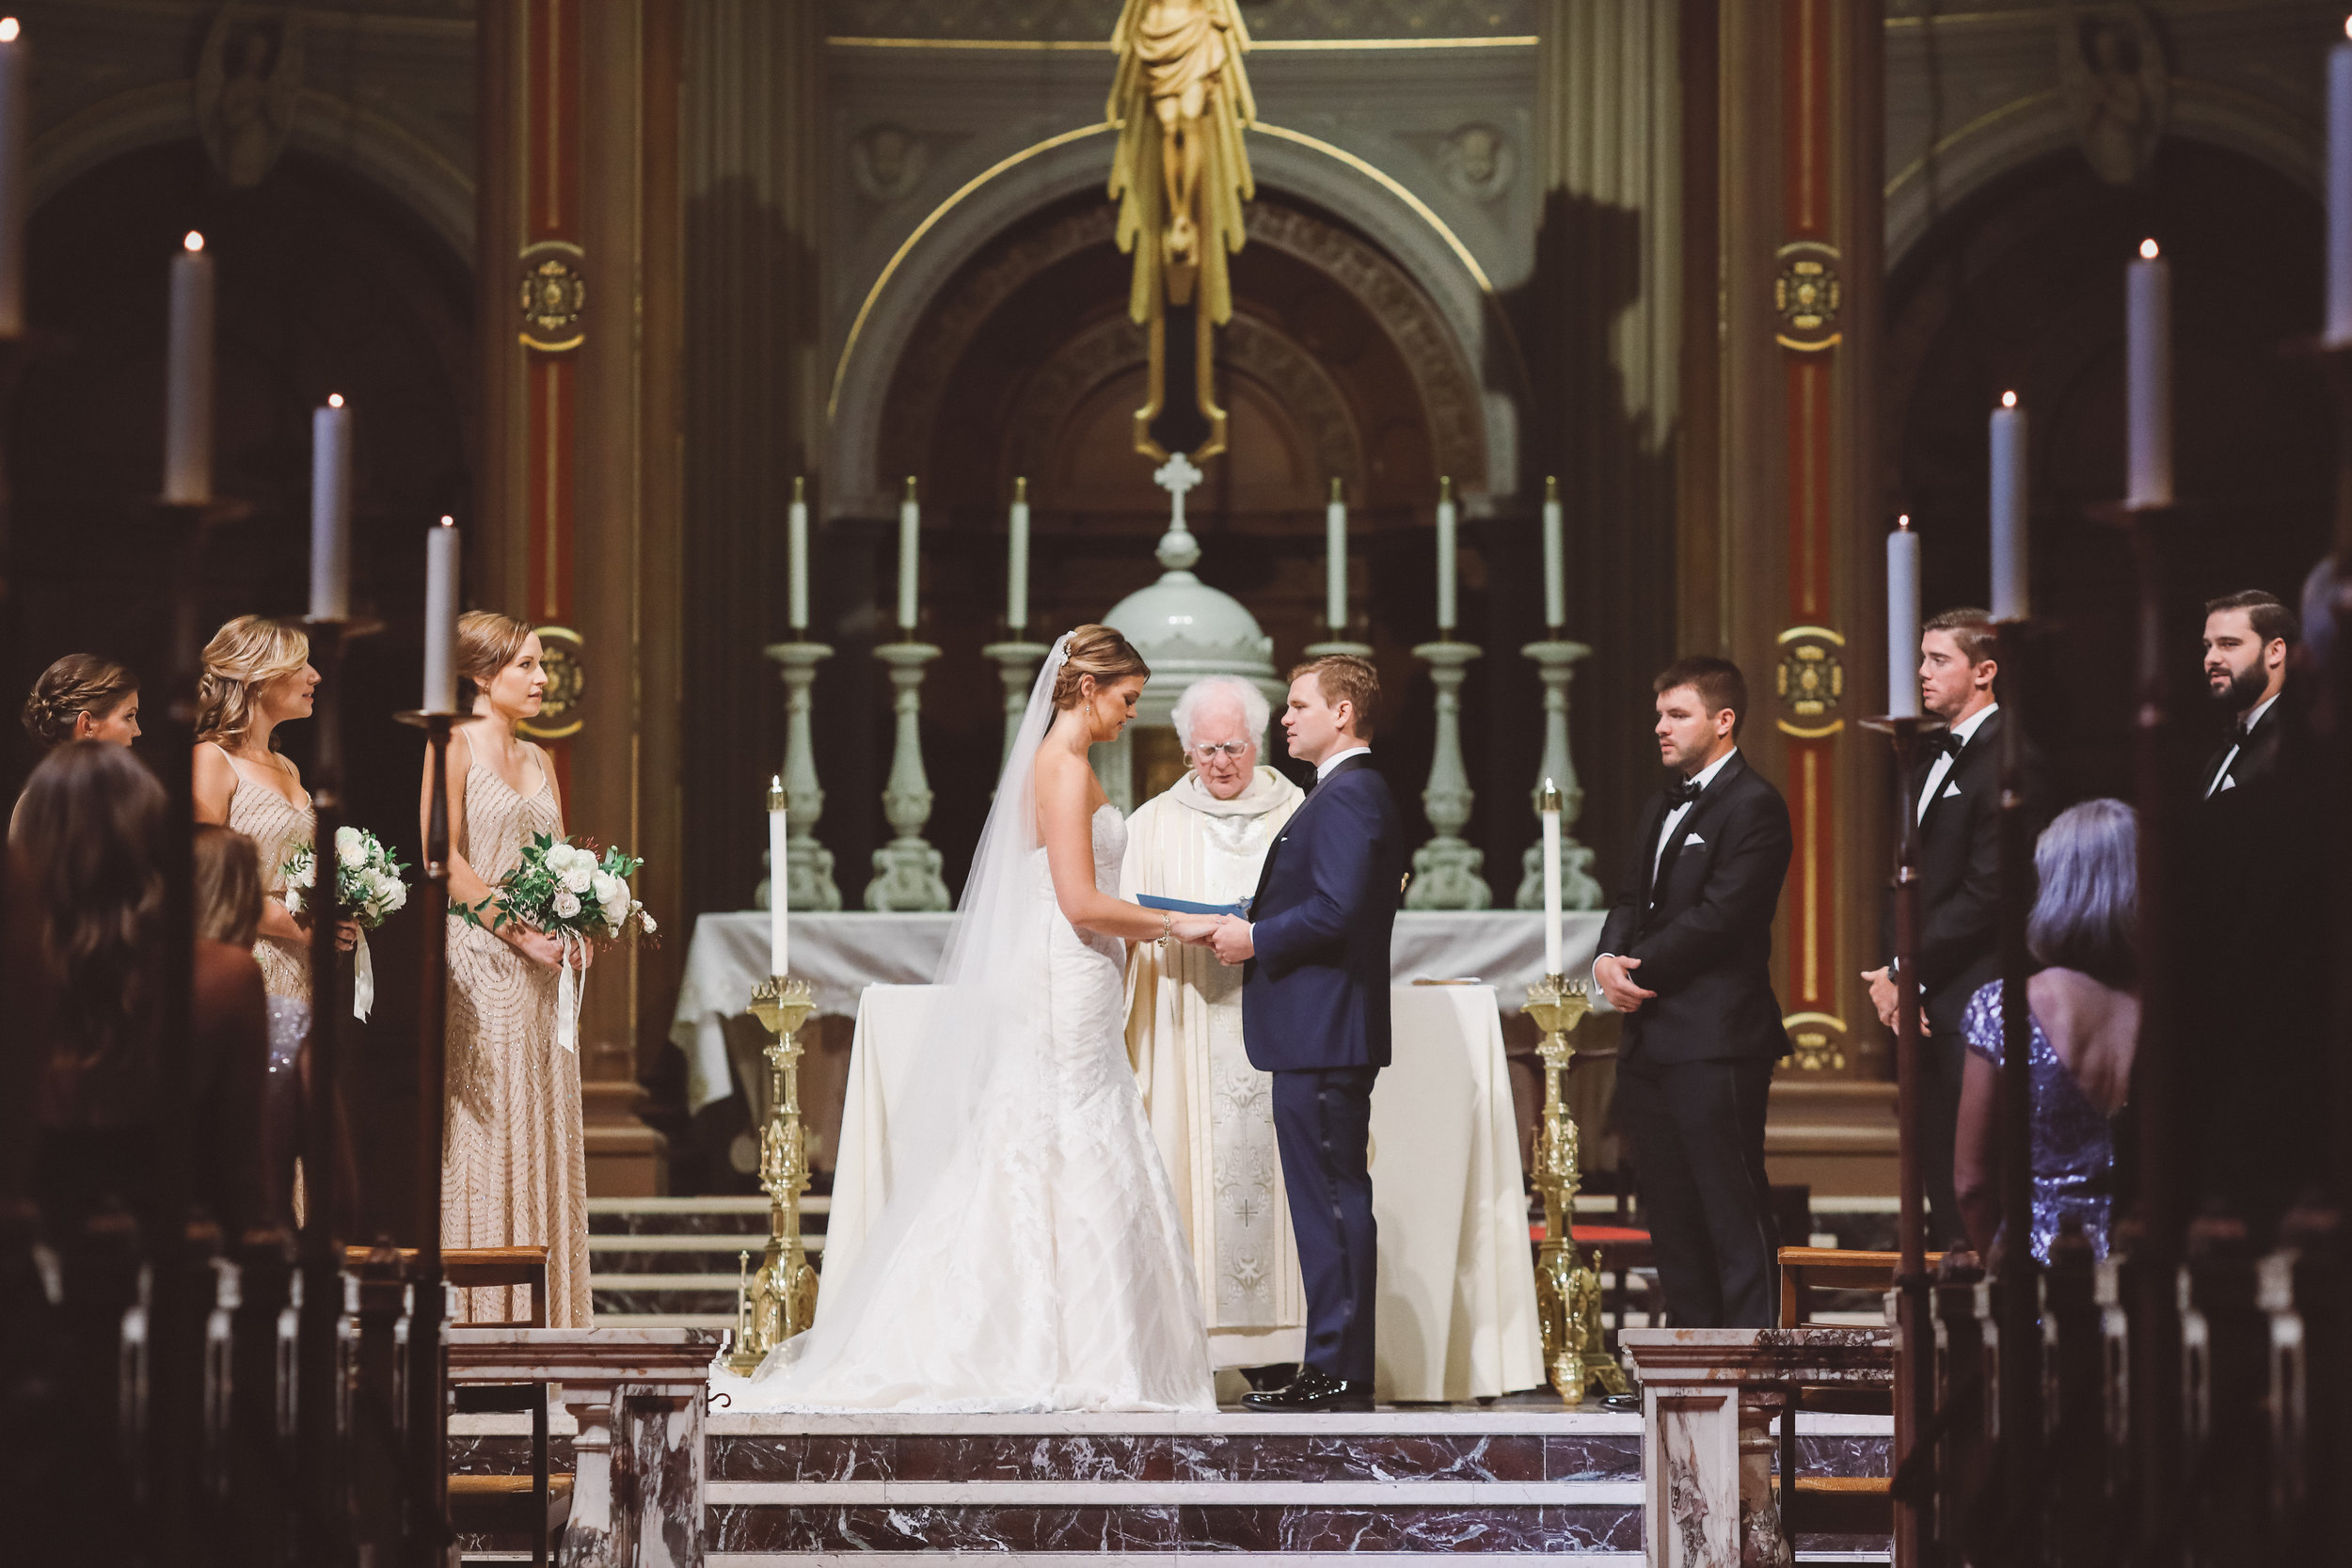 Anna Delores Photography_Lindsay & Curt 09.17.16-340.jpg